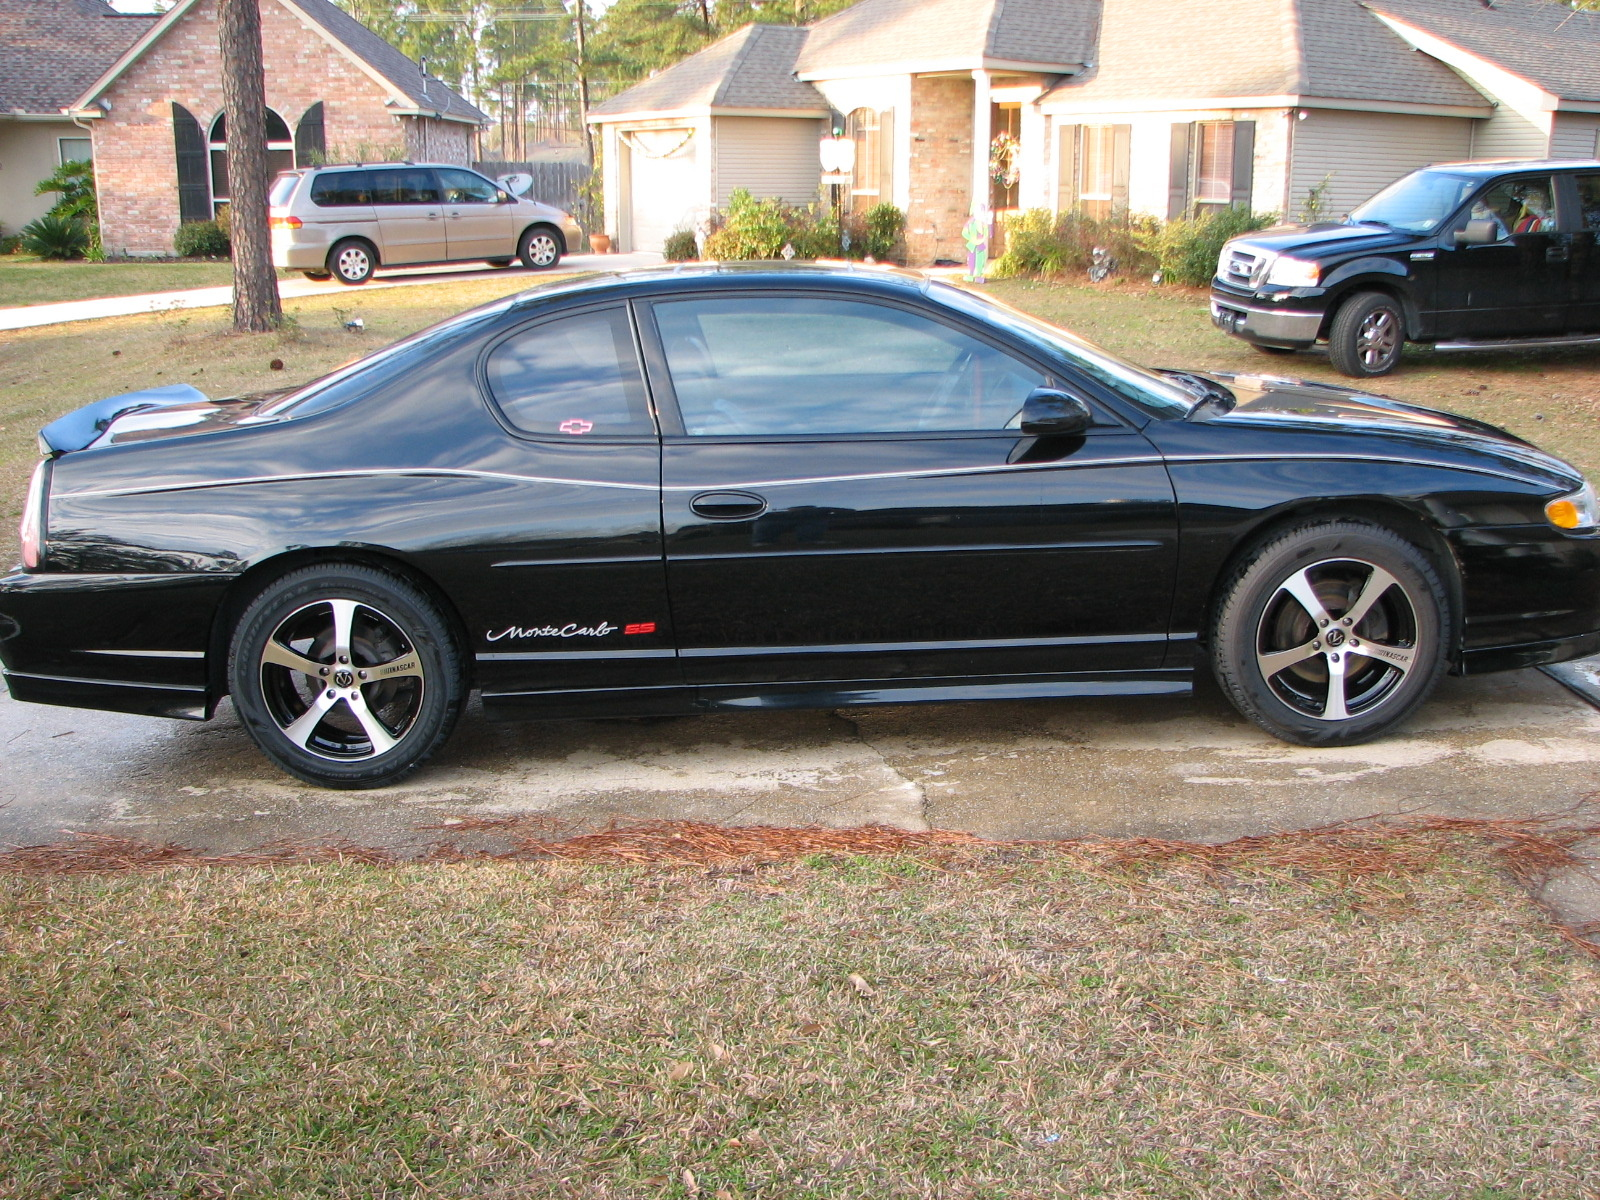 I Want To Swap Out The Engine In My 2003 Monte Carlo Ss To A LS7 V8. How  Much Trouble Will It Be?